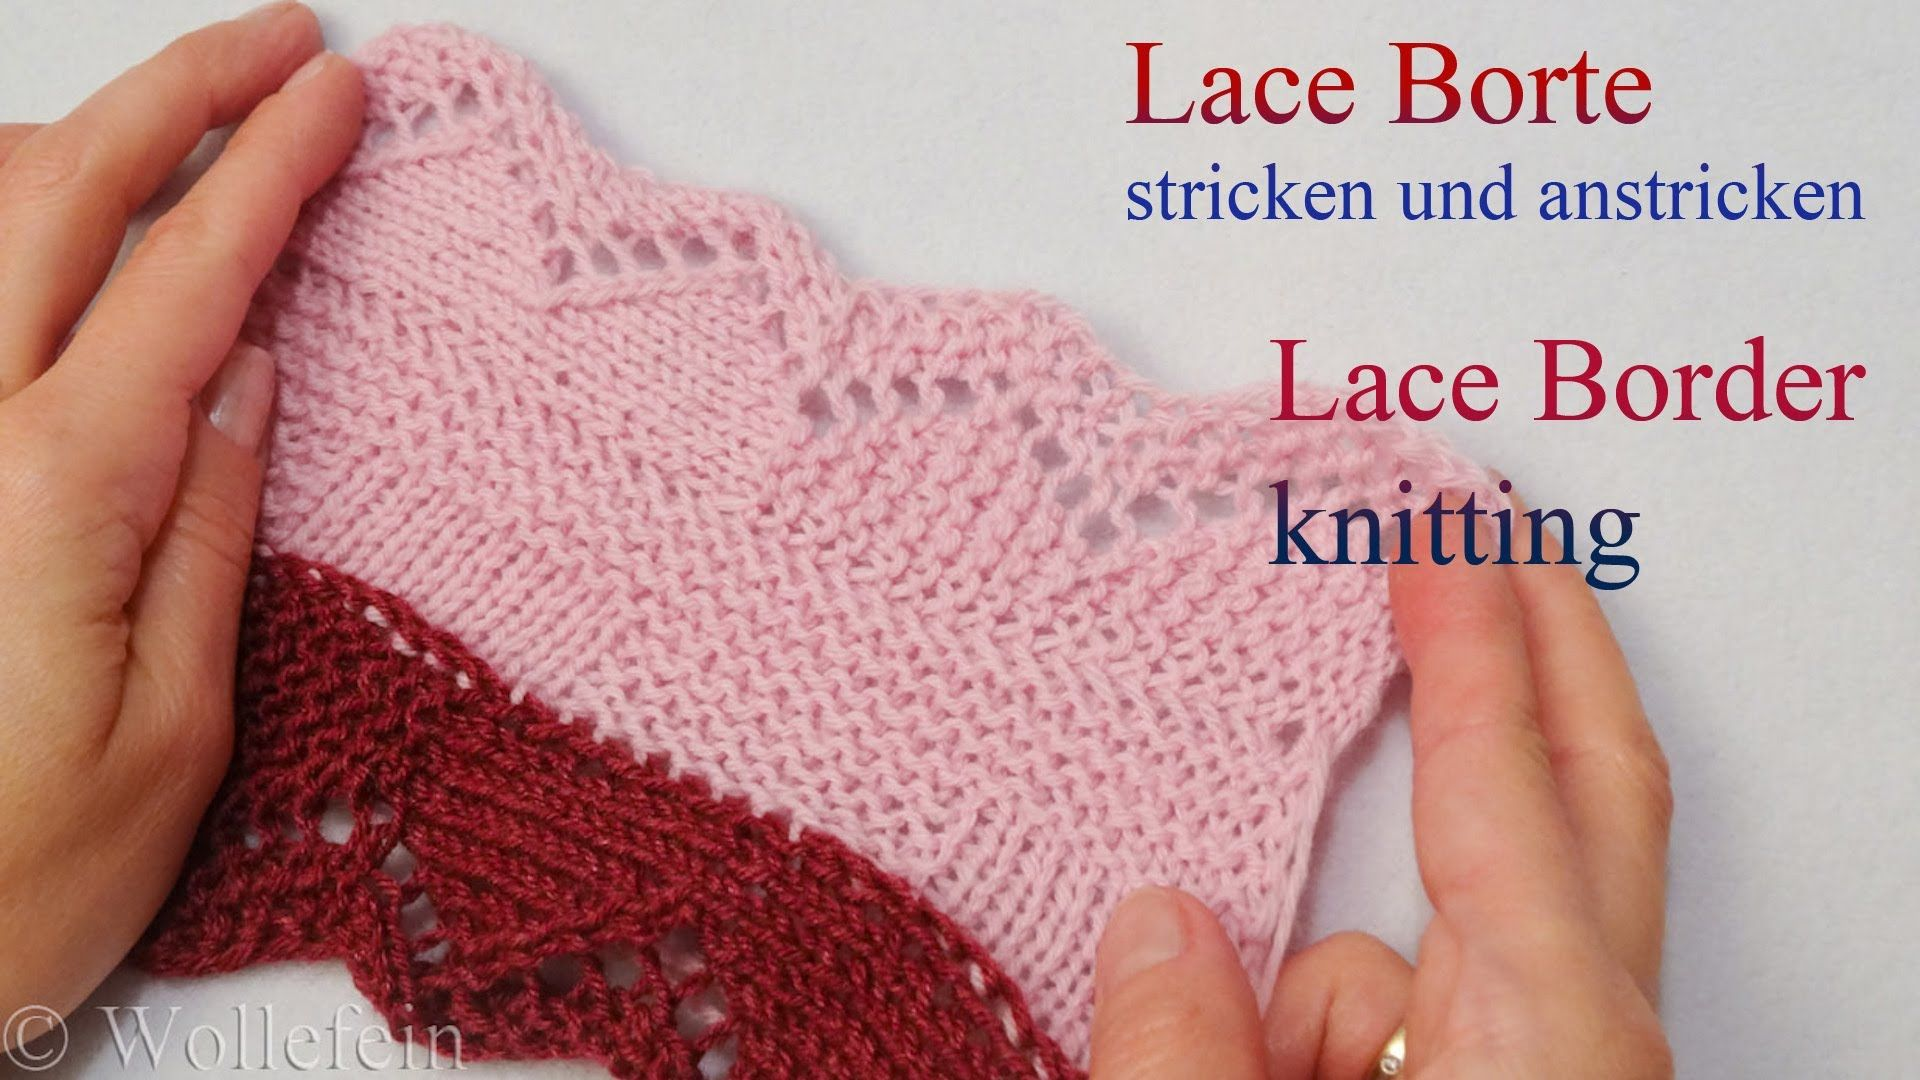 Lace Bordüre stricken und anstricken - Knitting on Lace Border 2